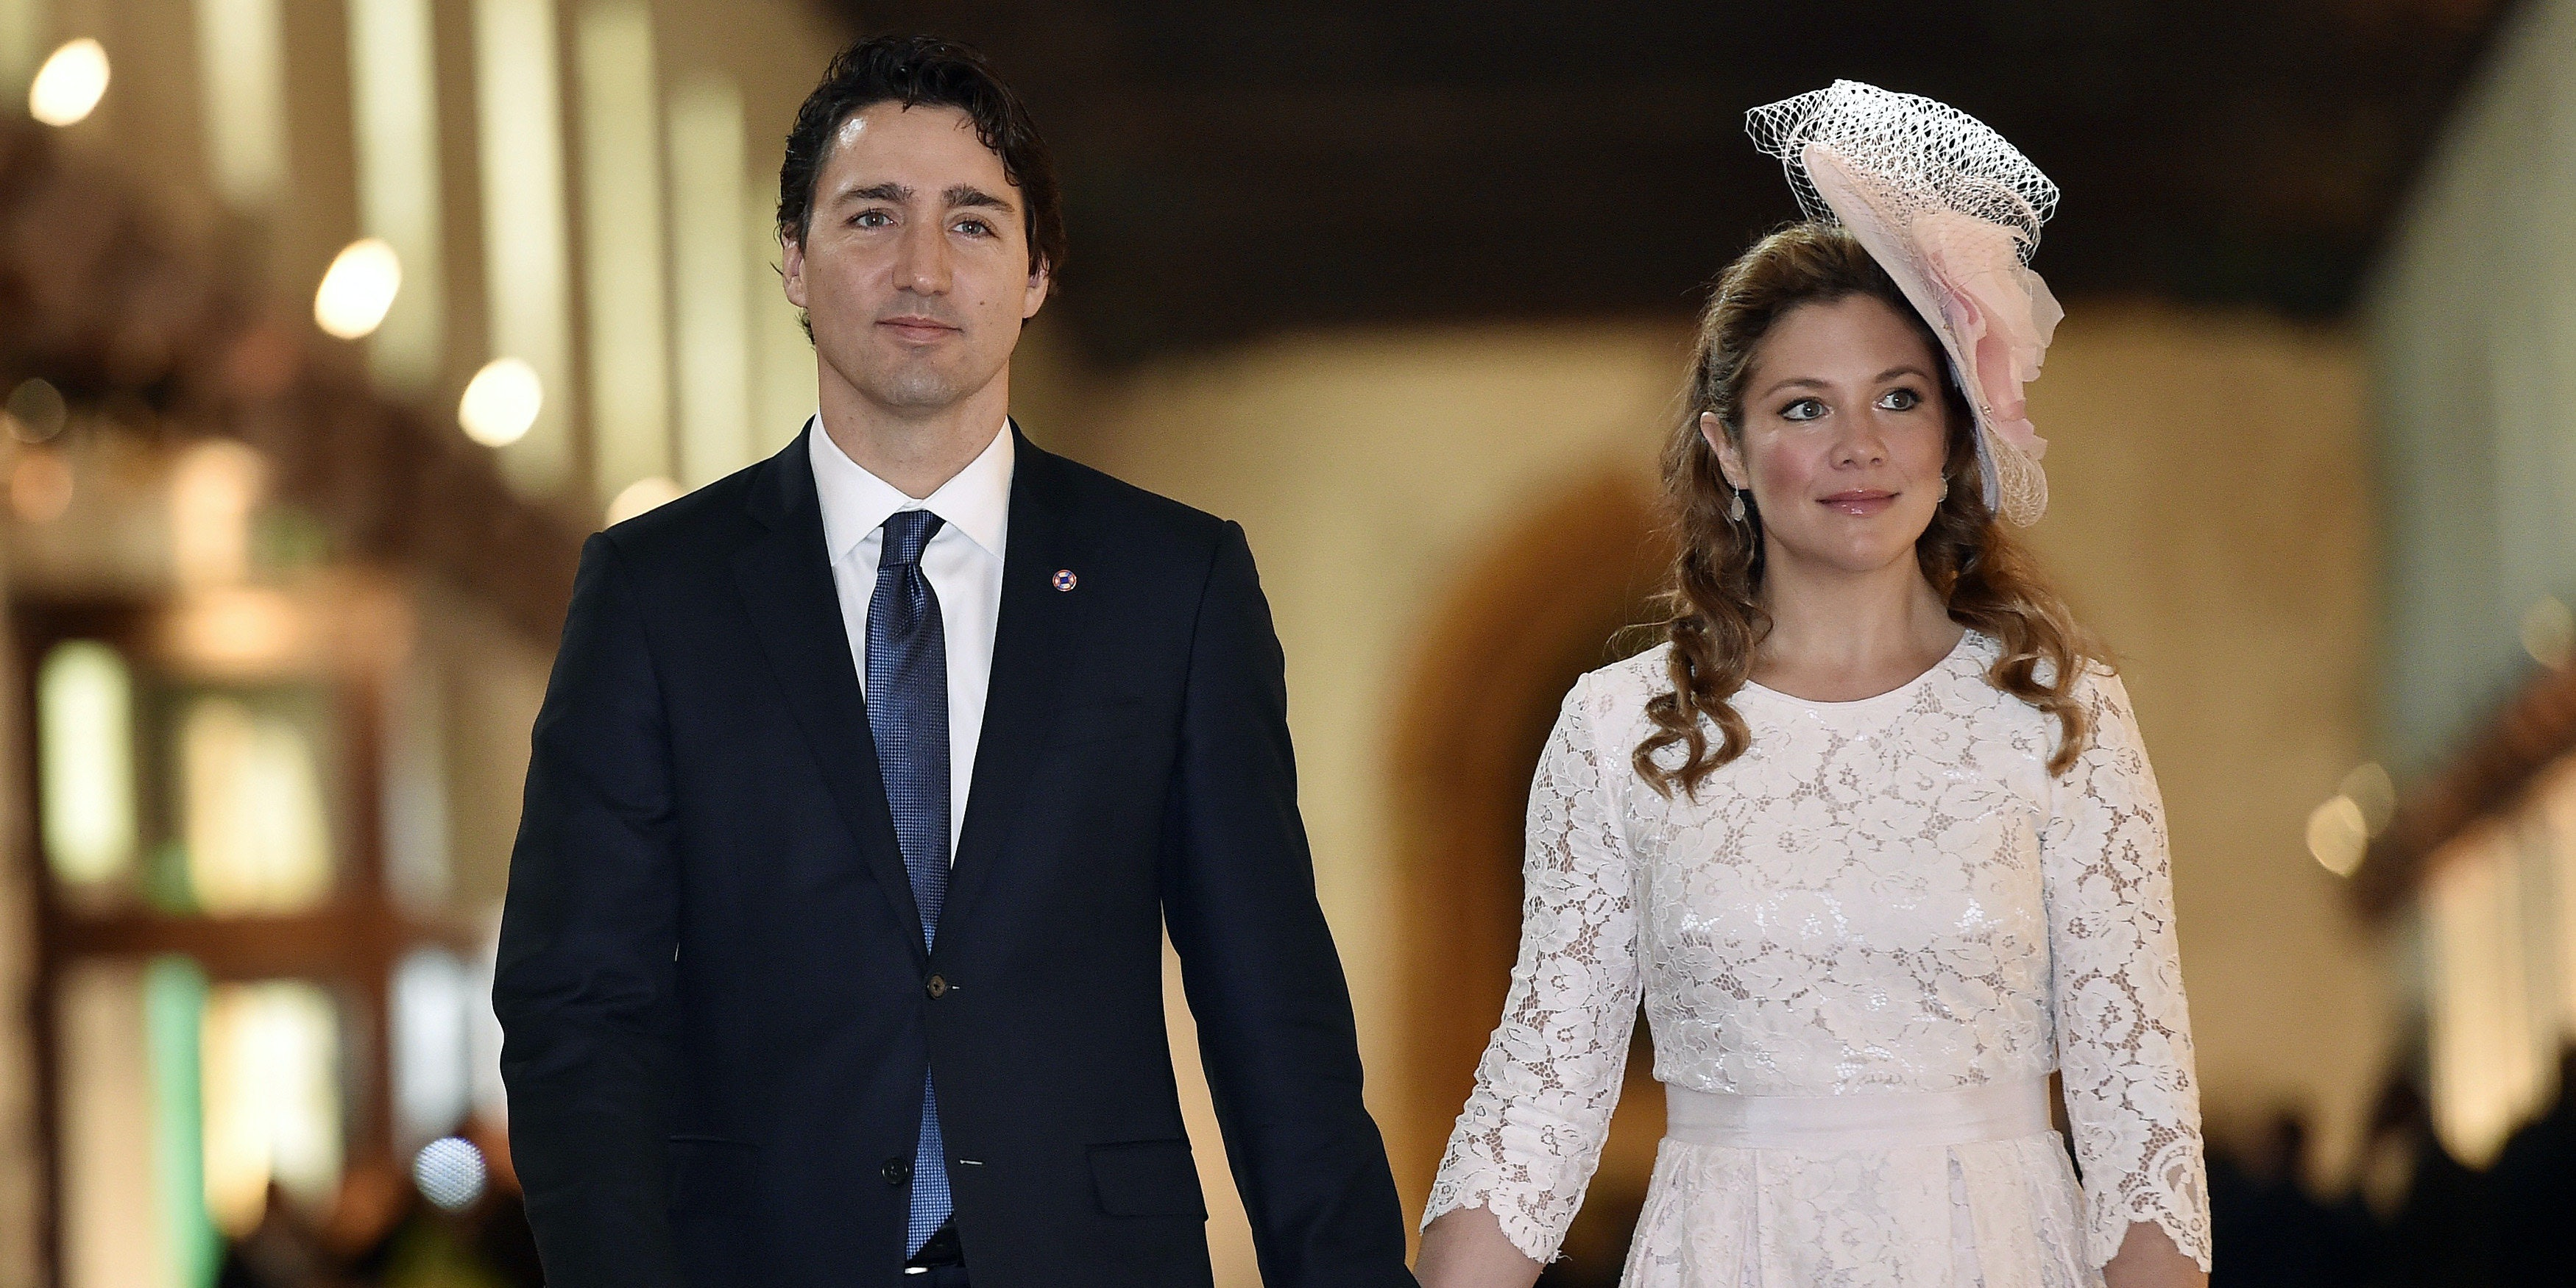 Sexy, liberal Justin Trudeau and his wife, Sophie Grégoire-Trudeau.